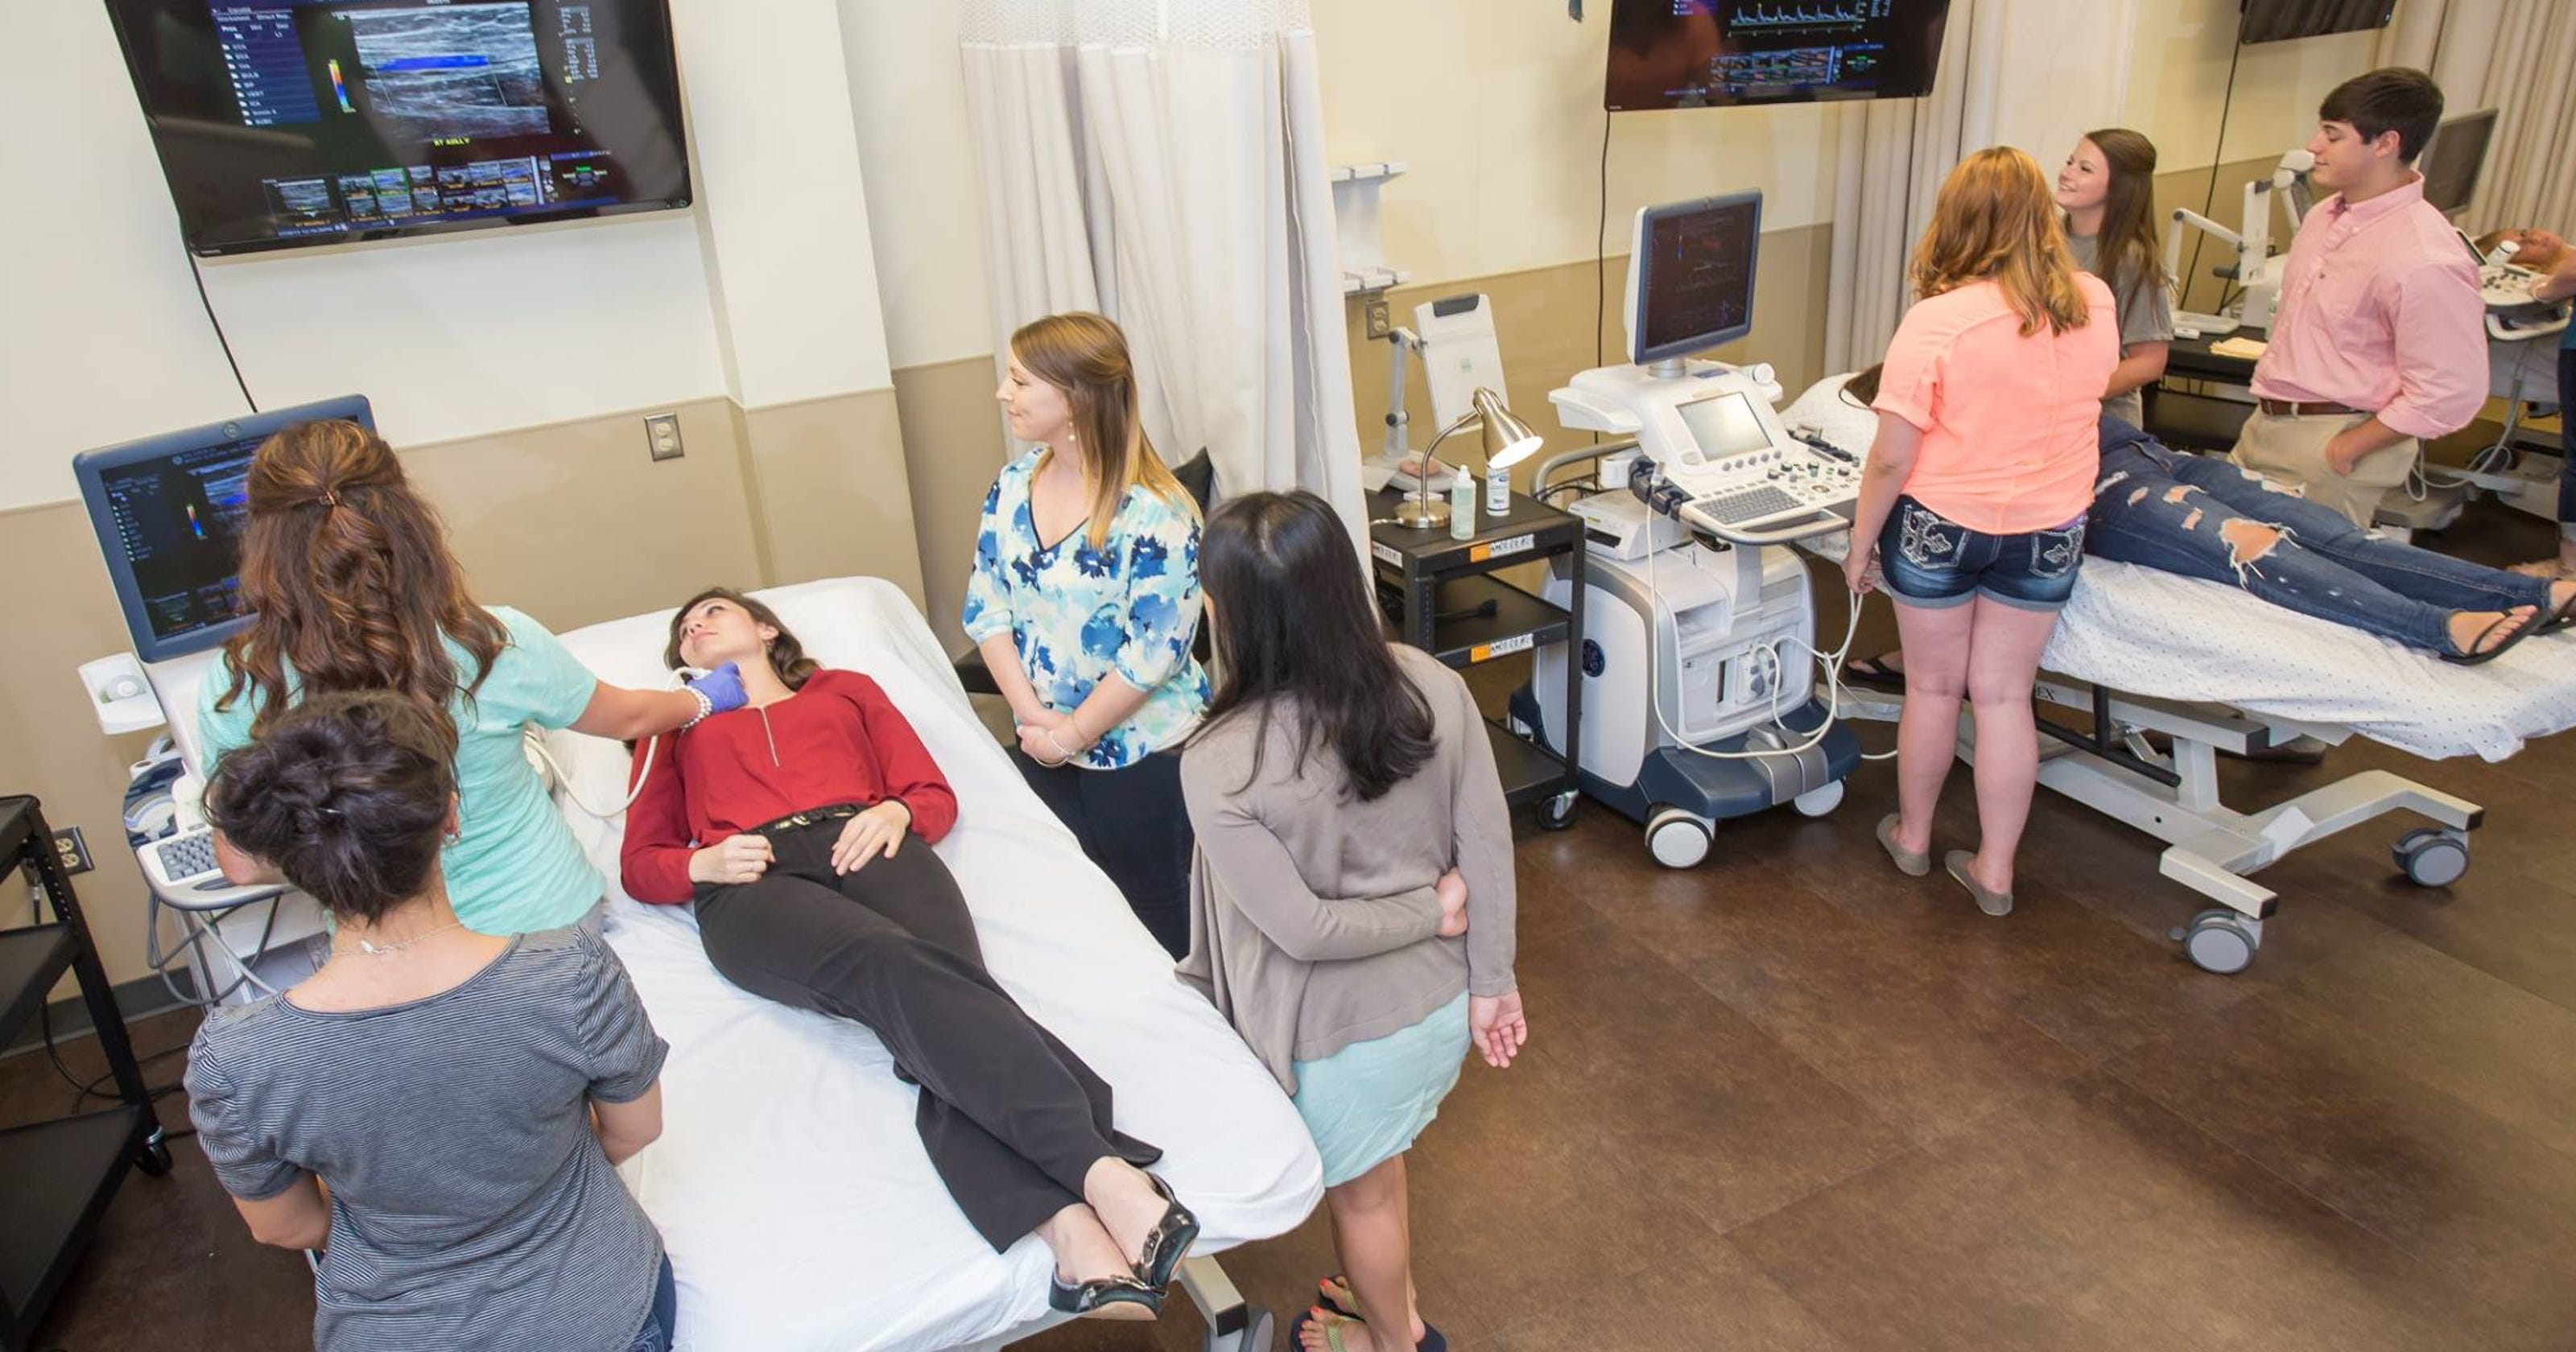 Pregnant women can get a free ultrasound at Vol State